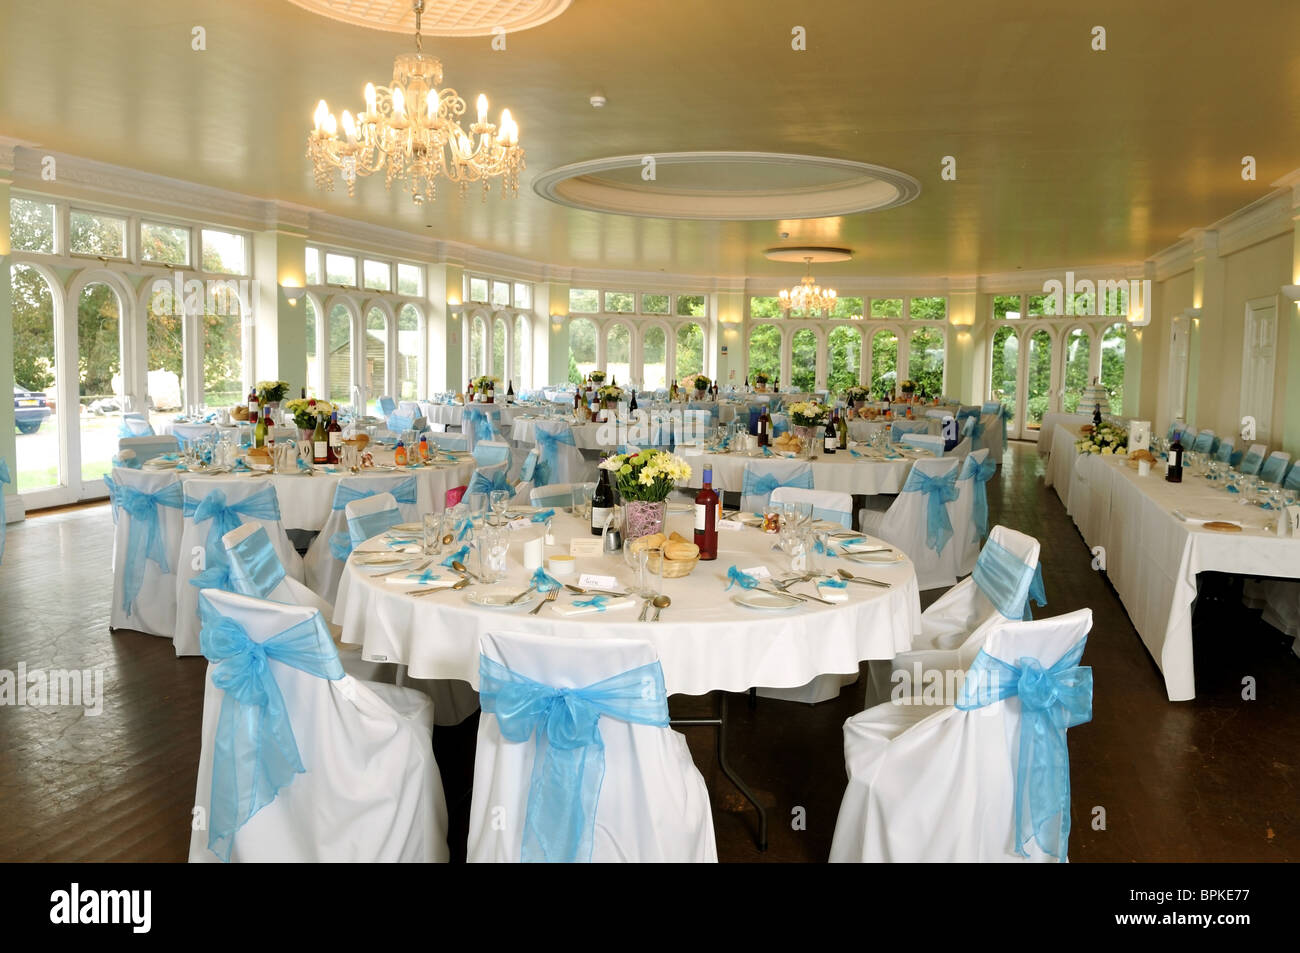 wedding reception table layout stock photo  31161067